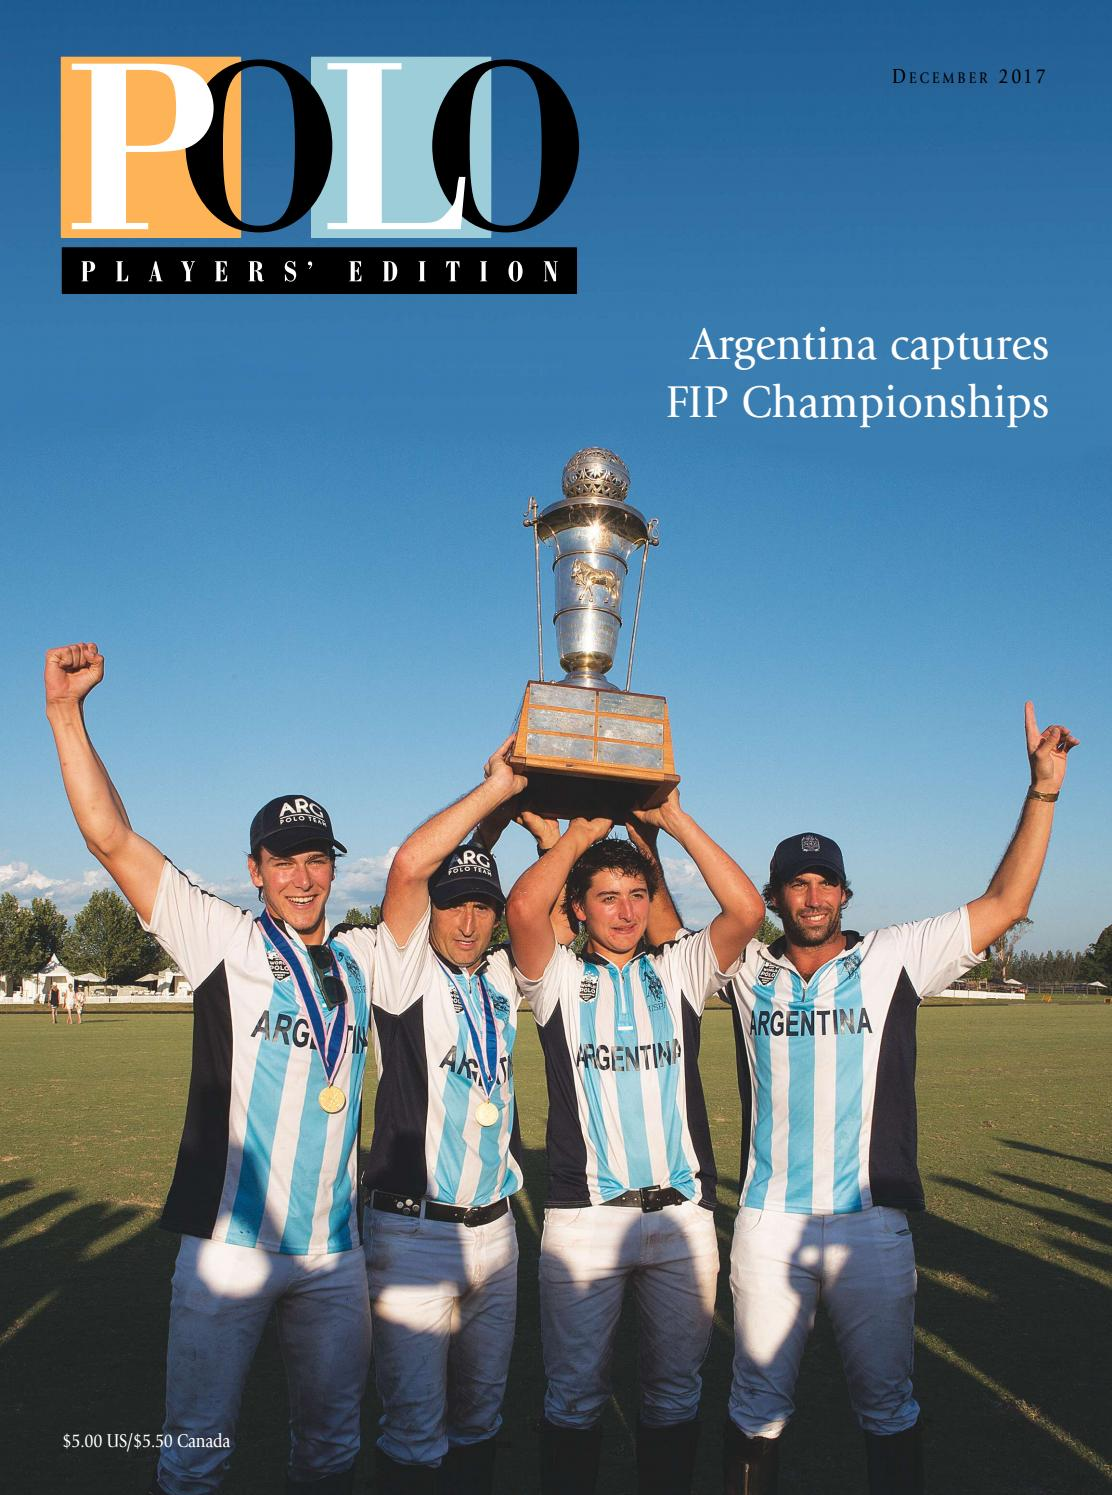 da0e90d2f749e December 2017 Polo Players  Edition by United States Polo ...